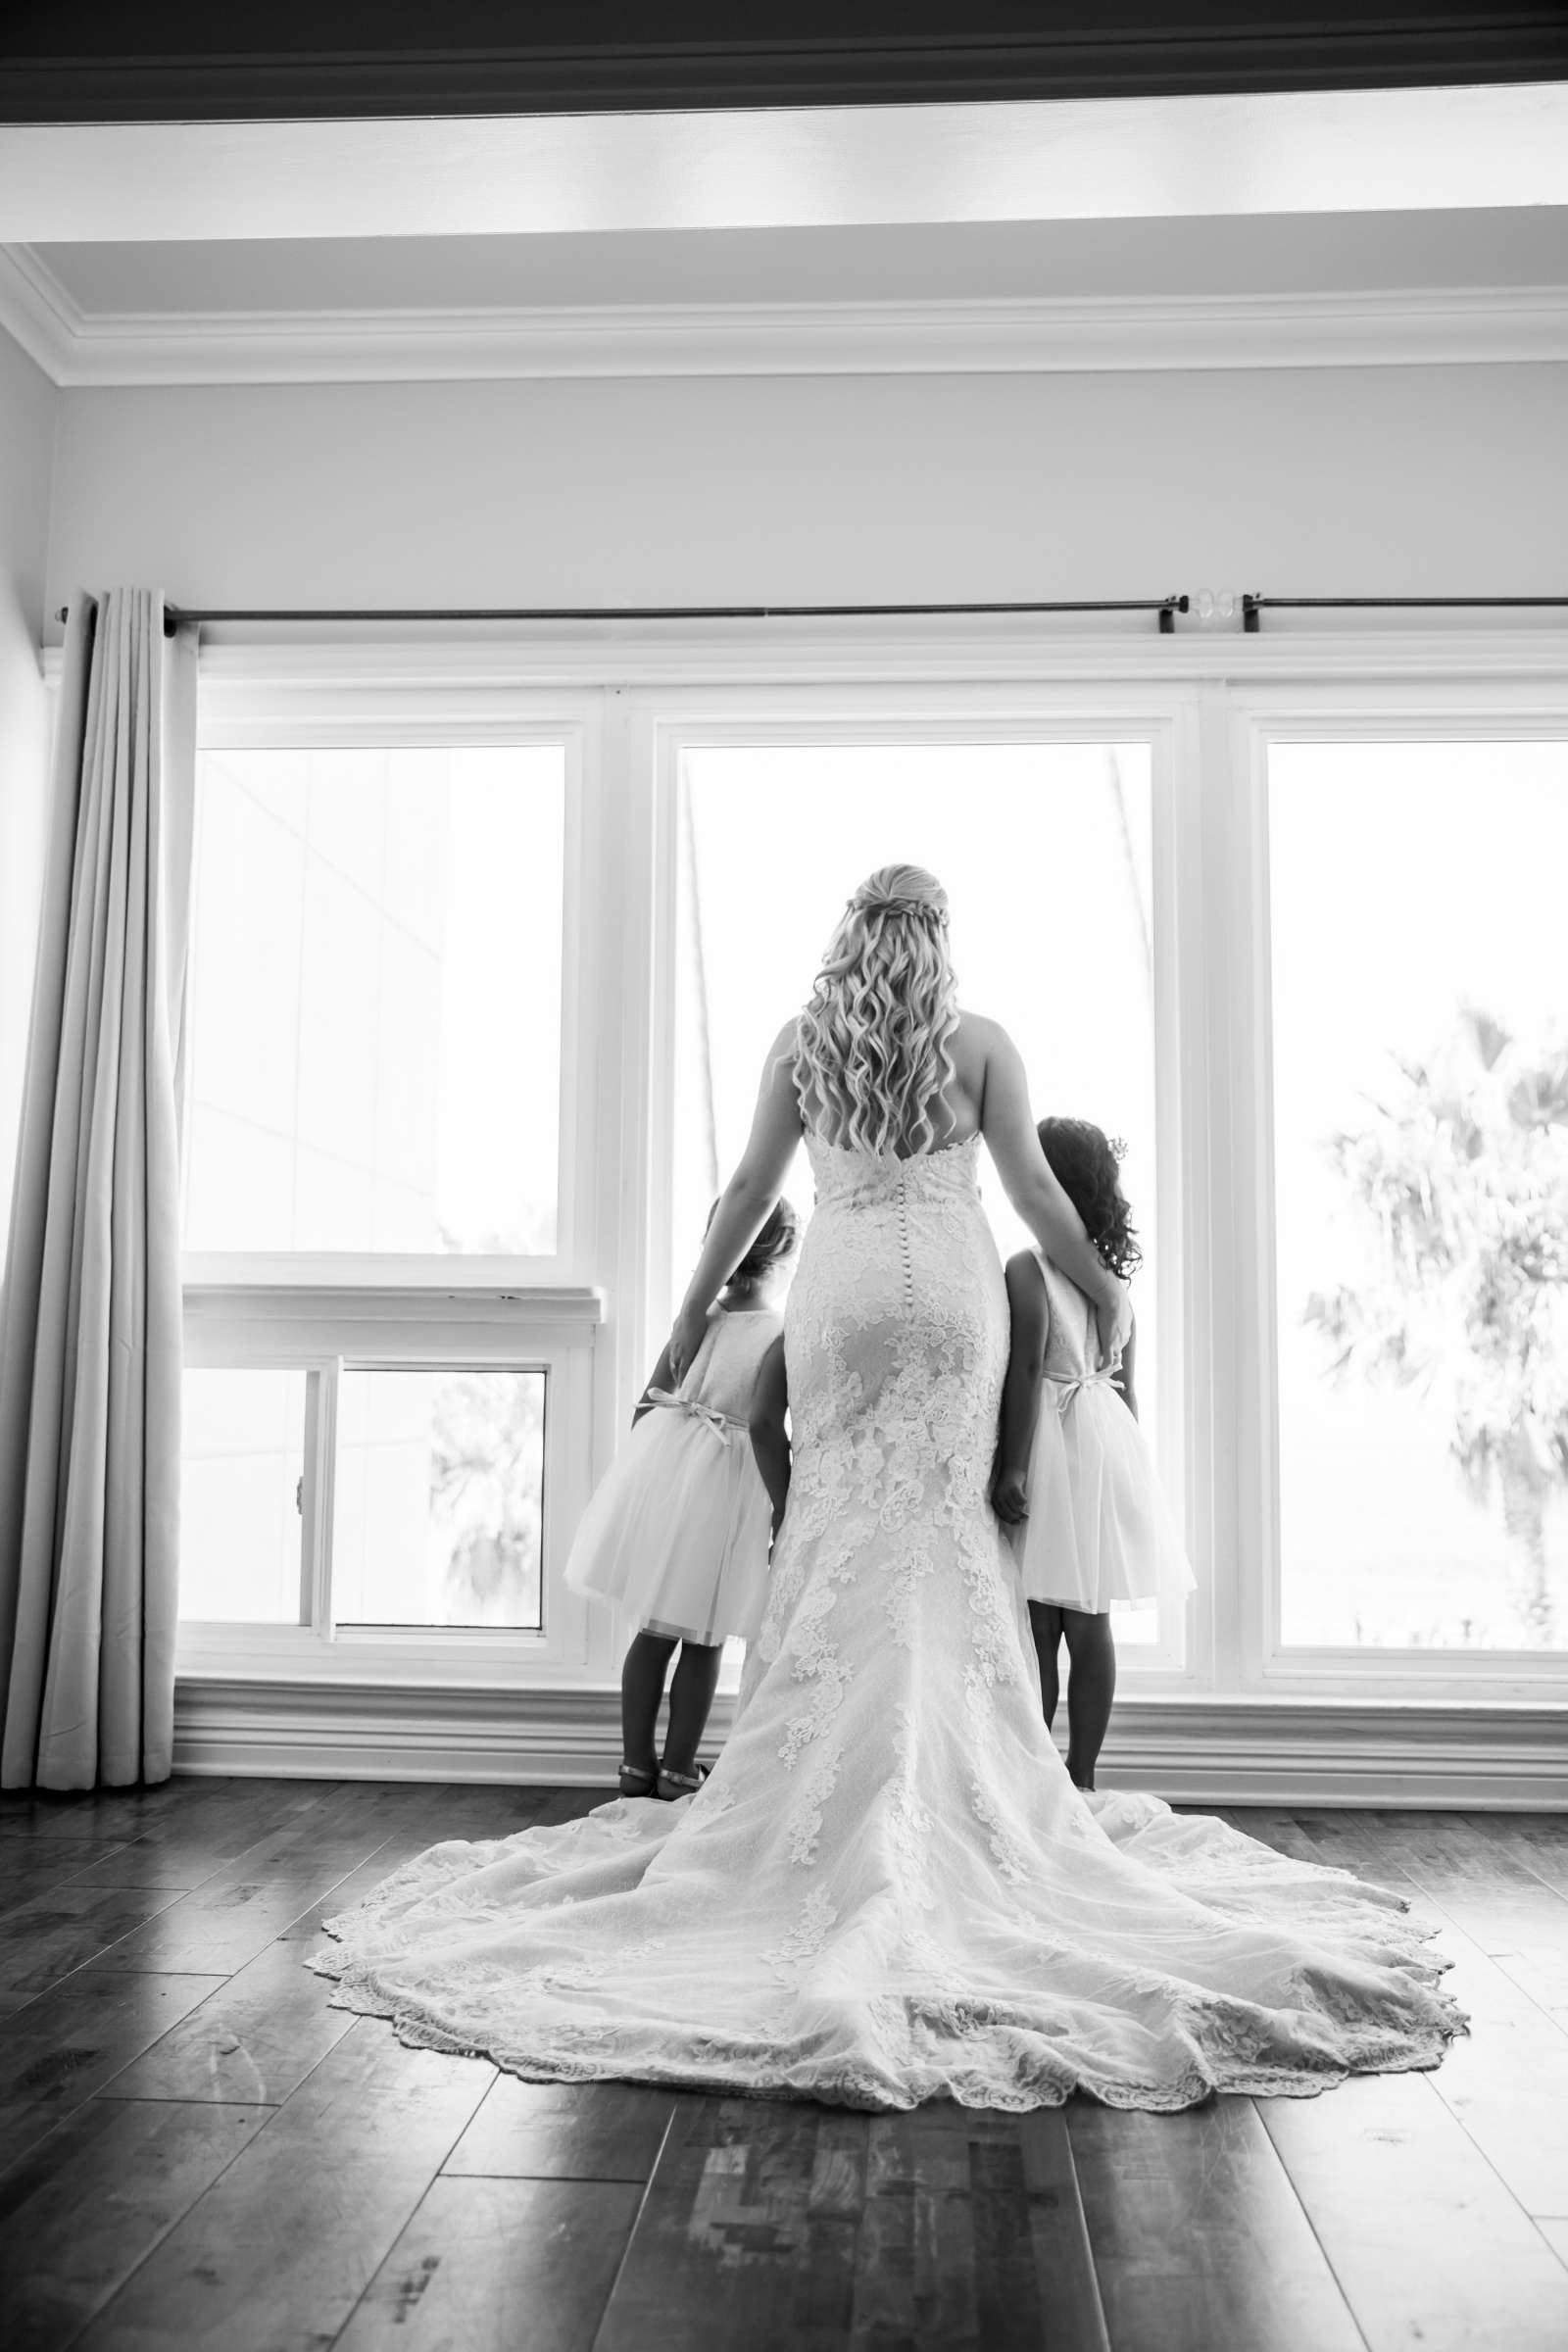 Cuvier Club Wedding coordinated by The Abbey Catering, Chelsey and Eric Wedding Photo #50 by True Photography